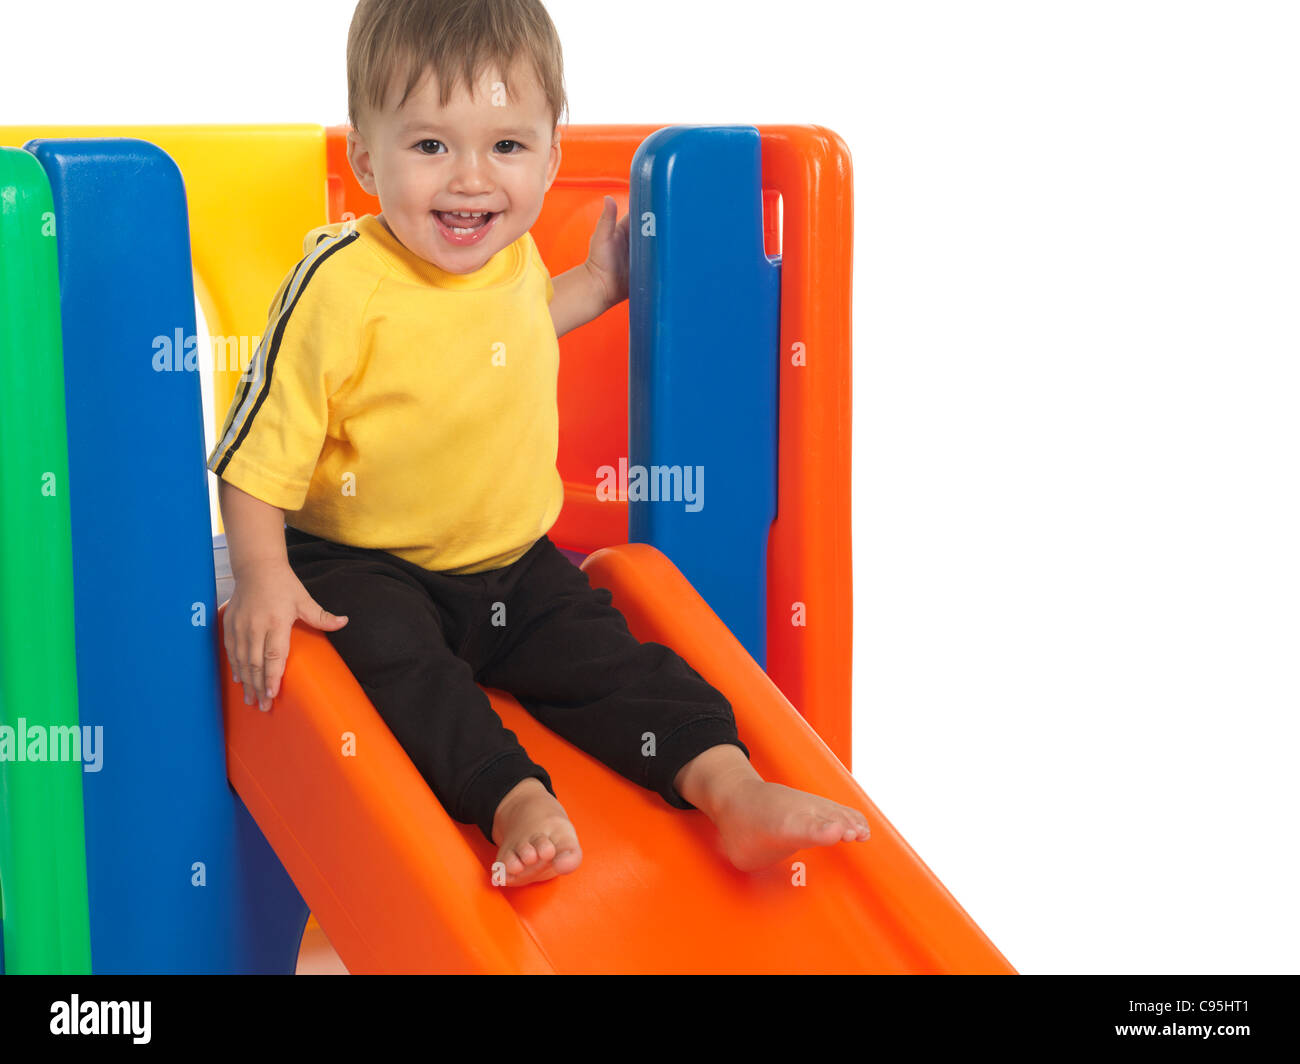 Happy one and a half year old child on a slide. Isolated on white background. - Stock Image